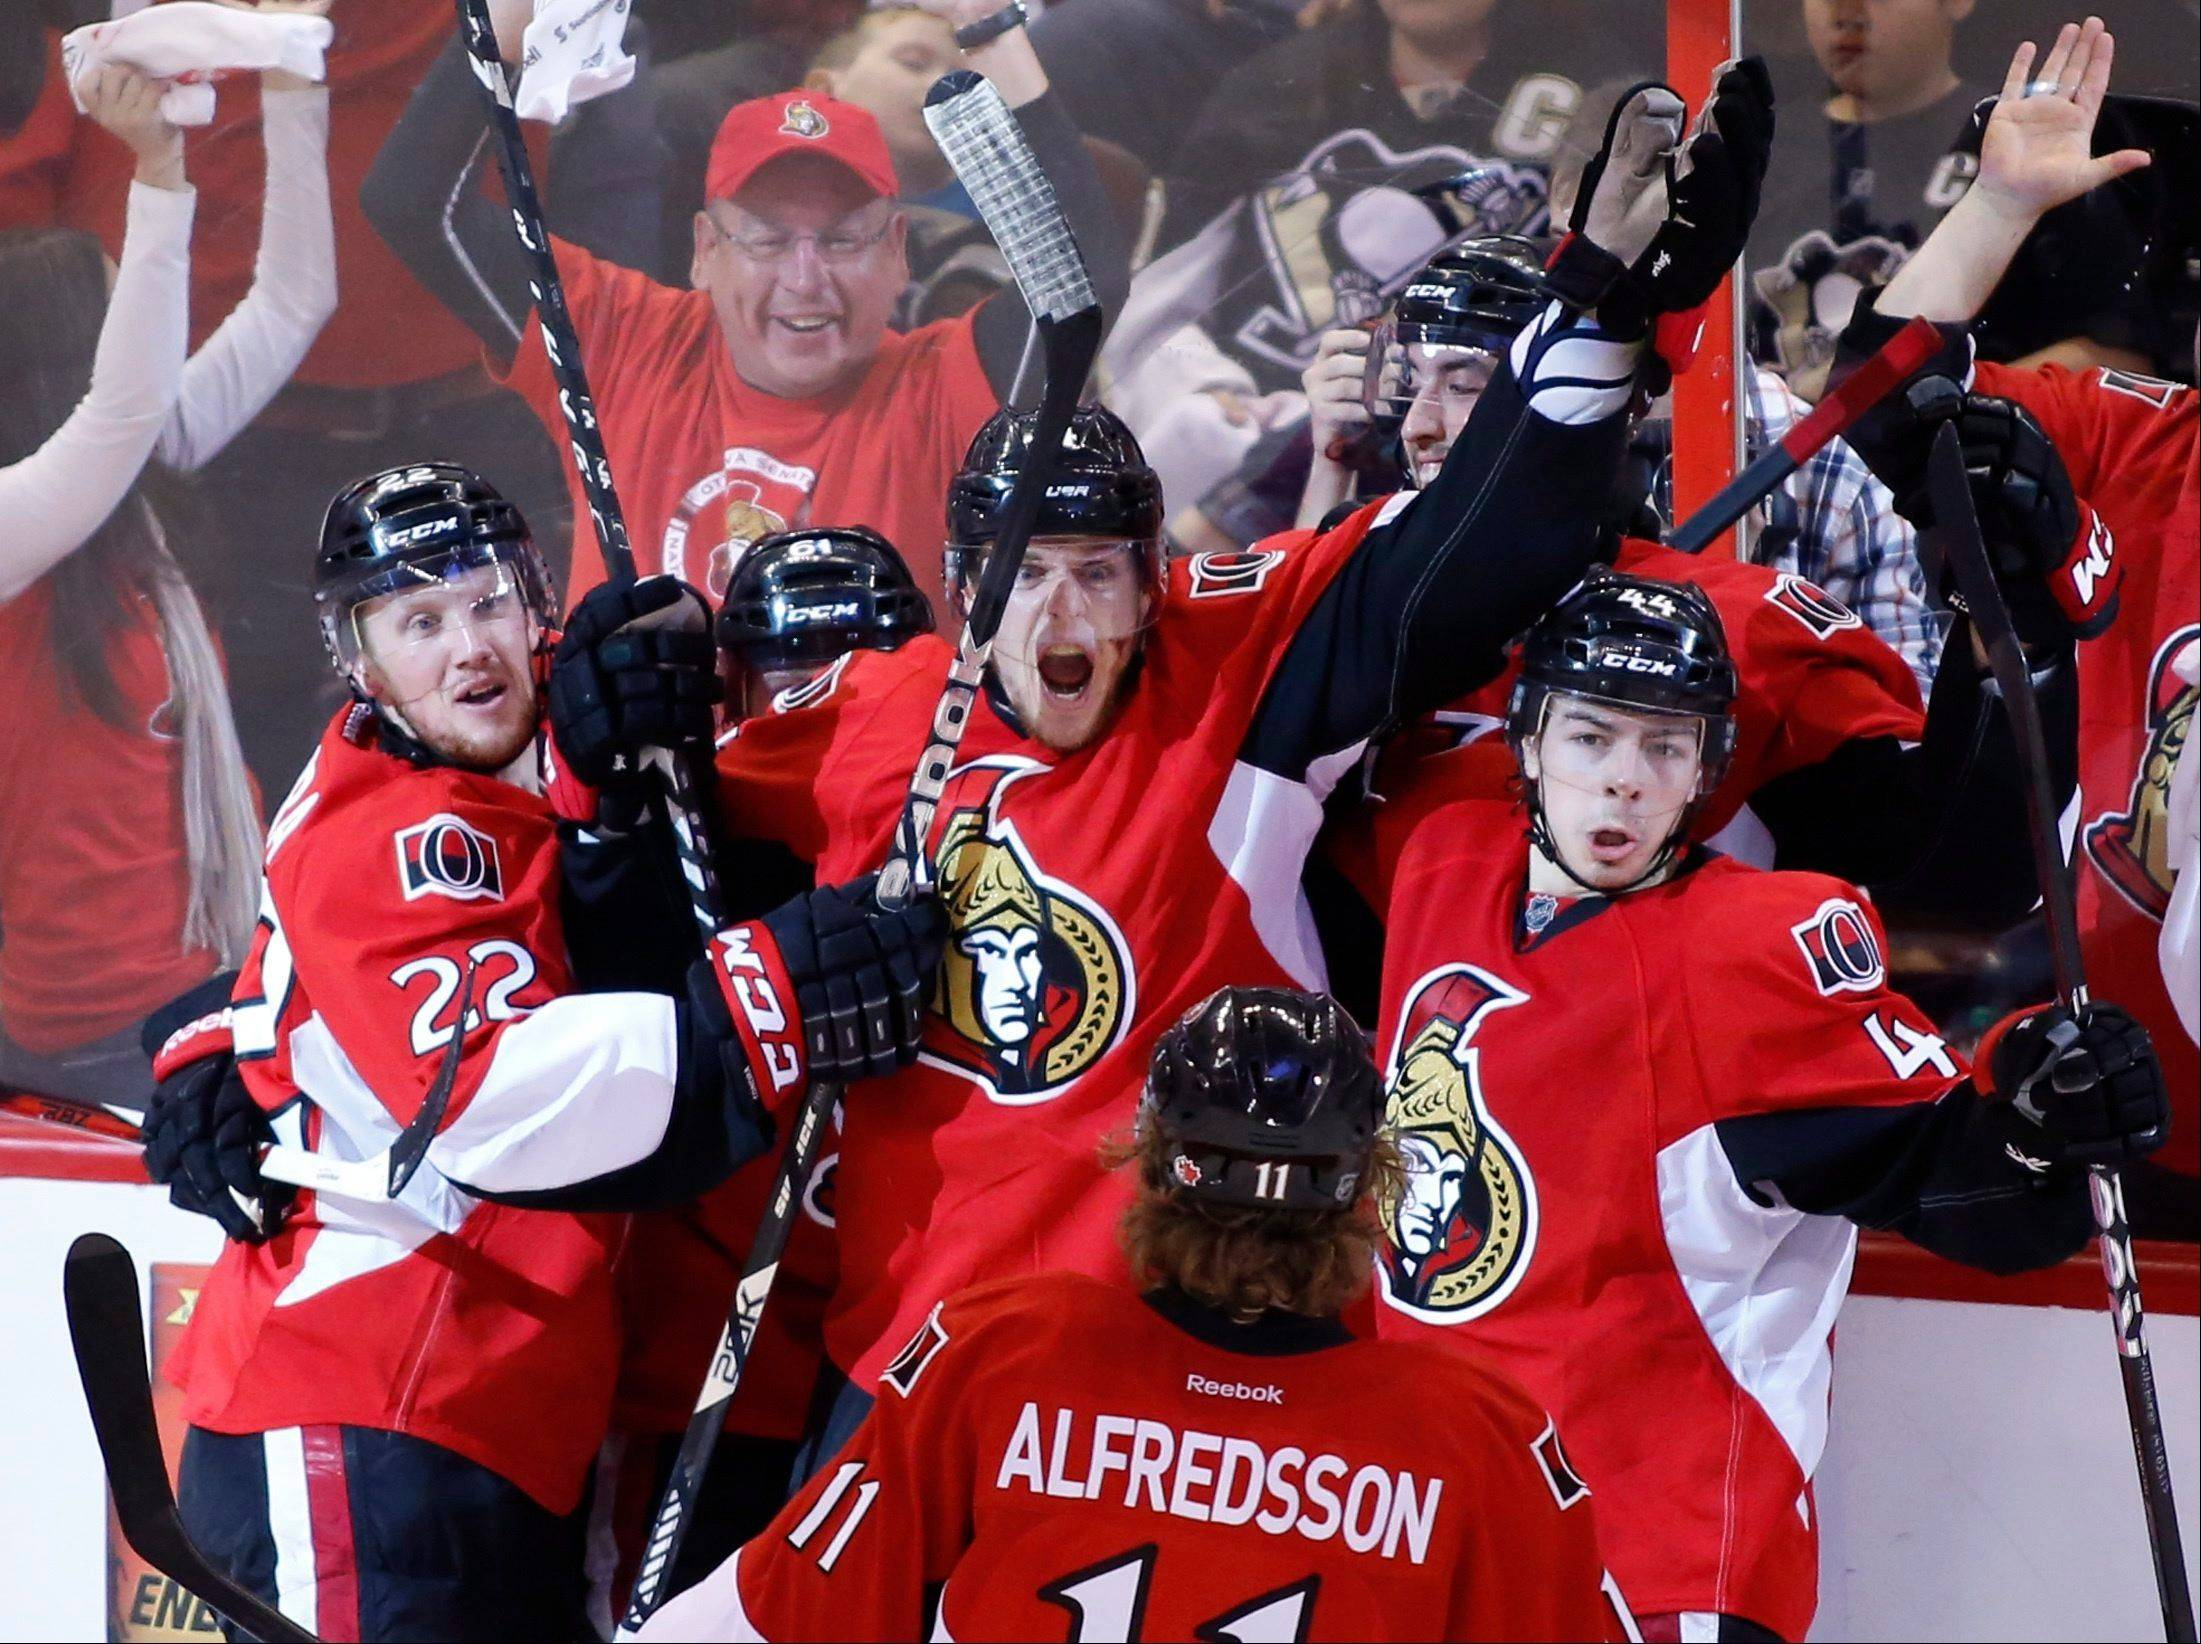 Ottawa Senators' Erik Condra, left, Colin Greening, center, Jean-Gabriel Pageau, right, and Daniel Alfredsson celebrate after Greening scores the winning goal against the Pittsburgh Penguins during the second overtime period of Game 4 of their Stanley Cup Eastern Conference semi-final NHL hockey series at Scotiabank Place in Ottawa on Sunday, May 19, 2013.